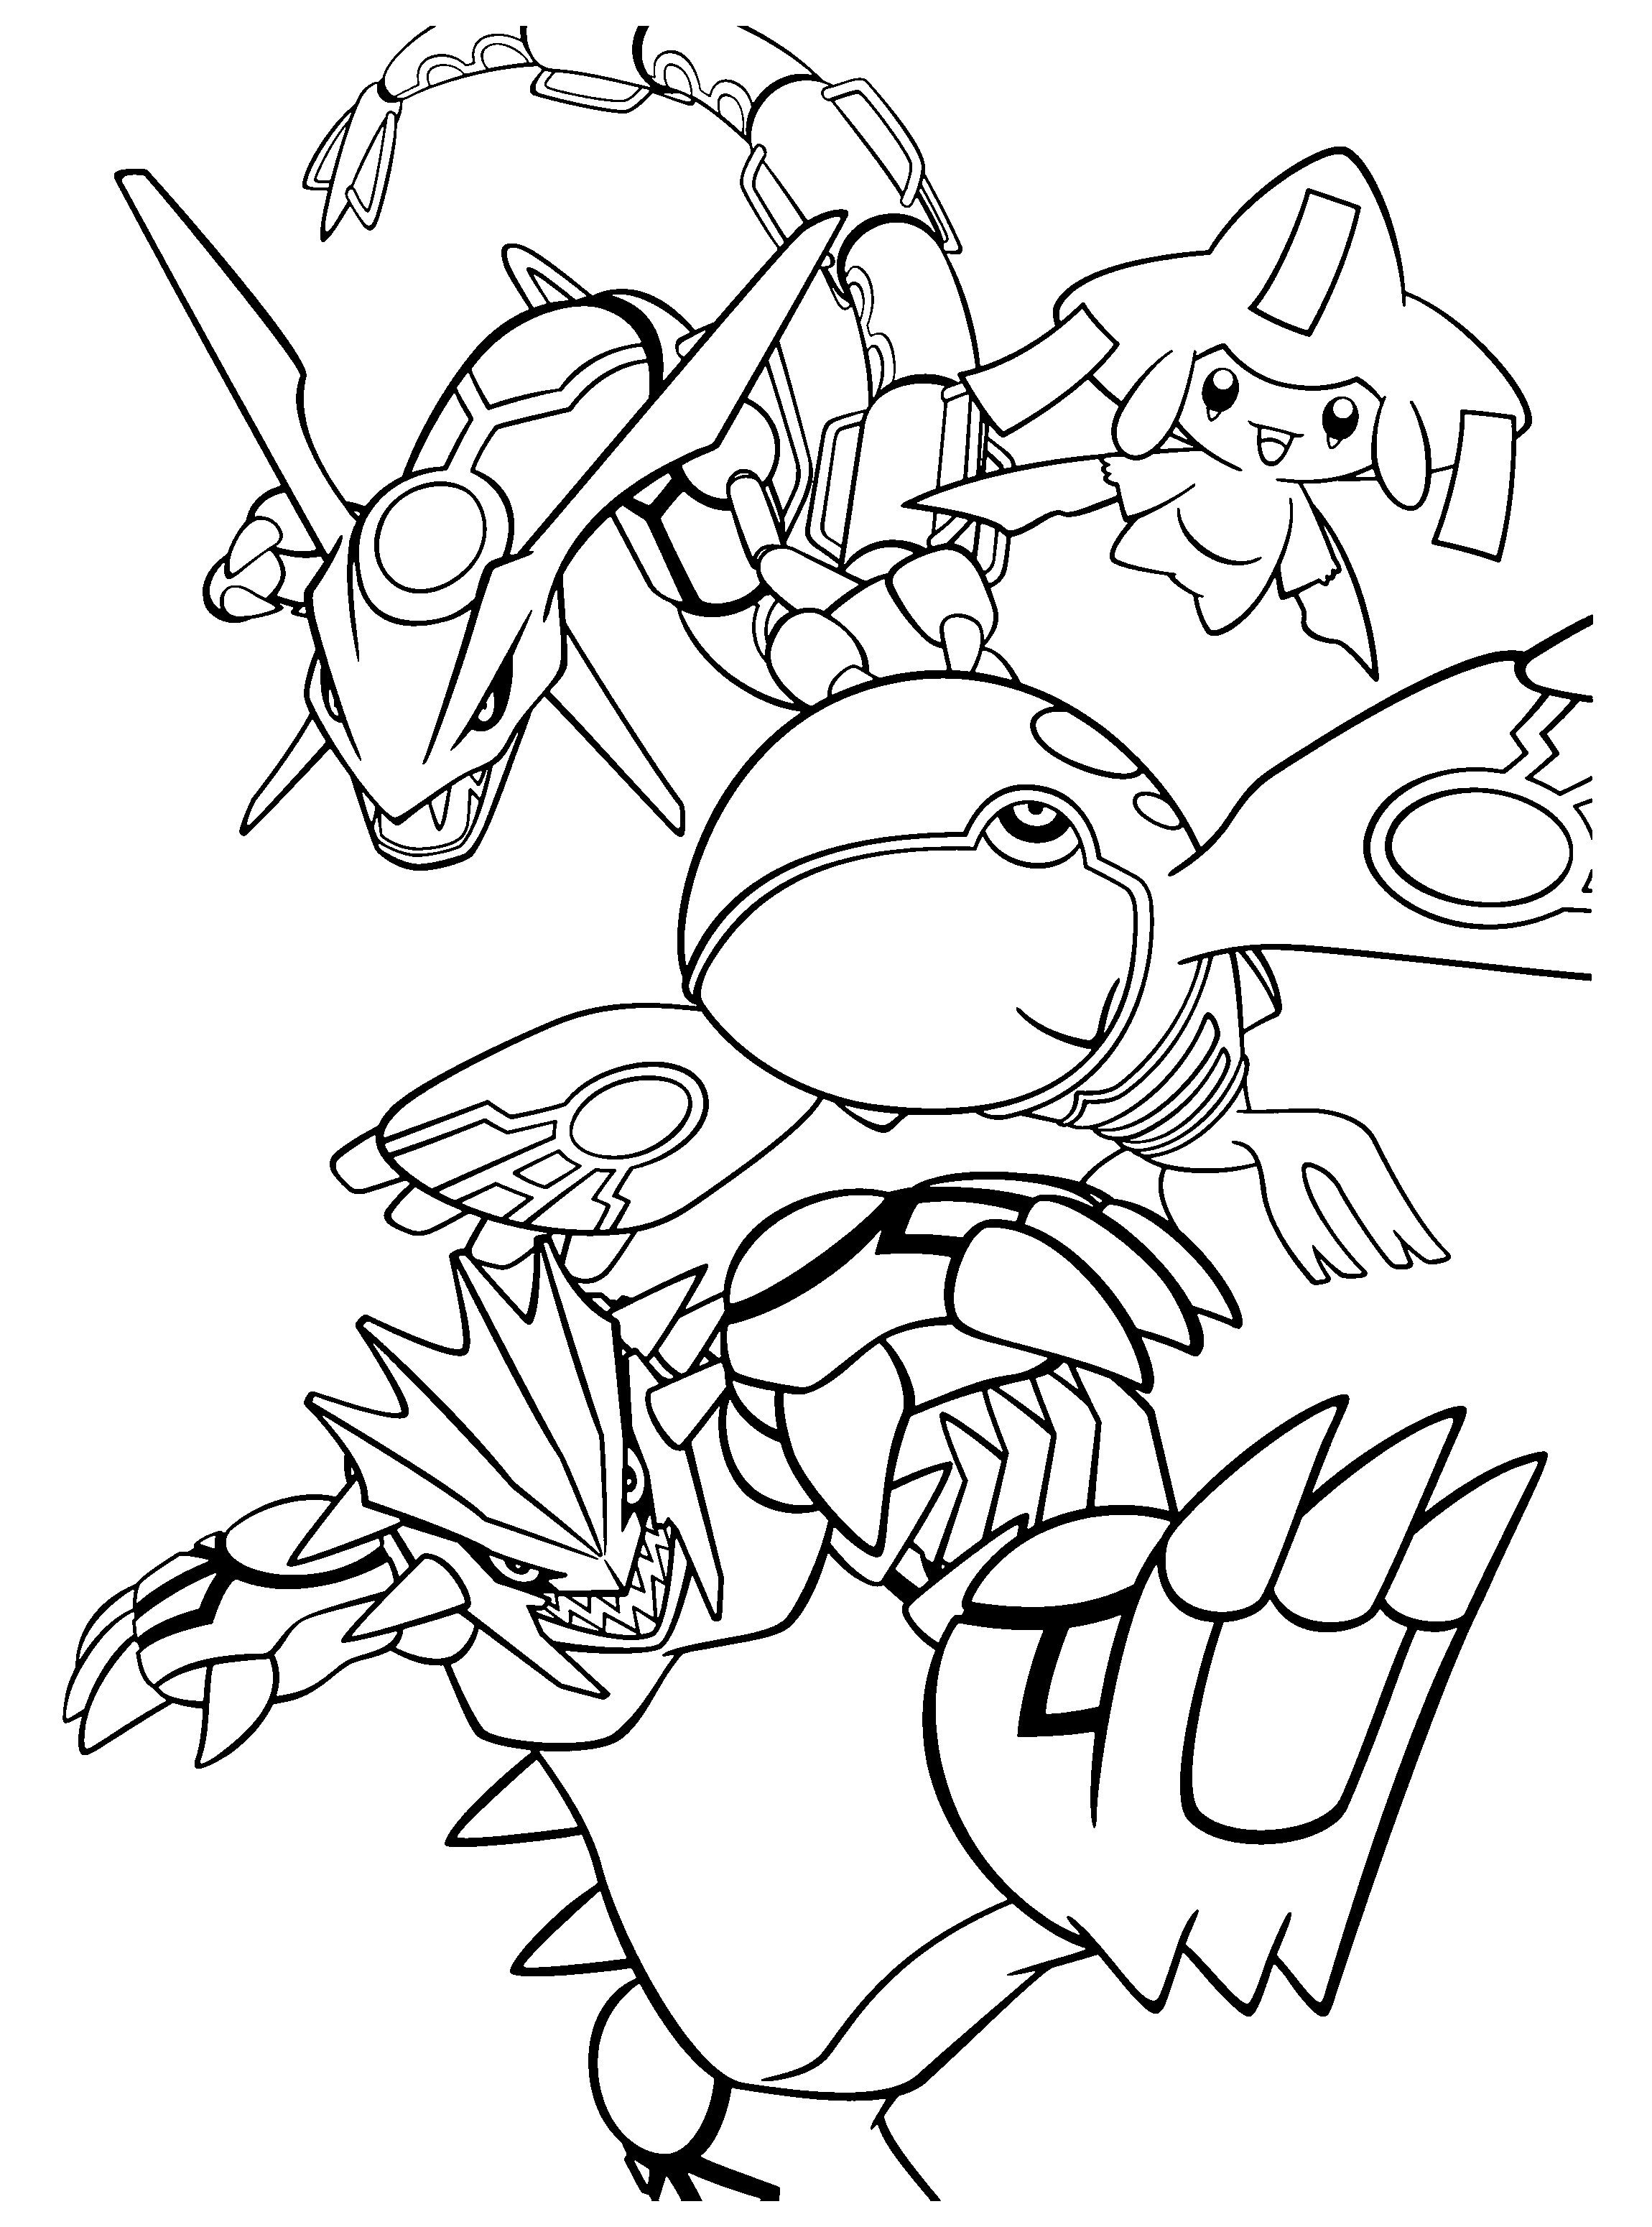 Pokemon Coloring Pages Groudon And Kyogre Pokemon Coloring Pages